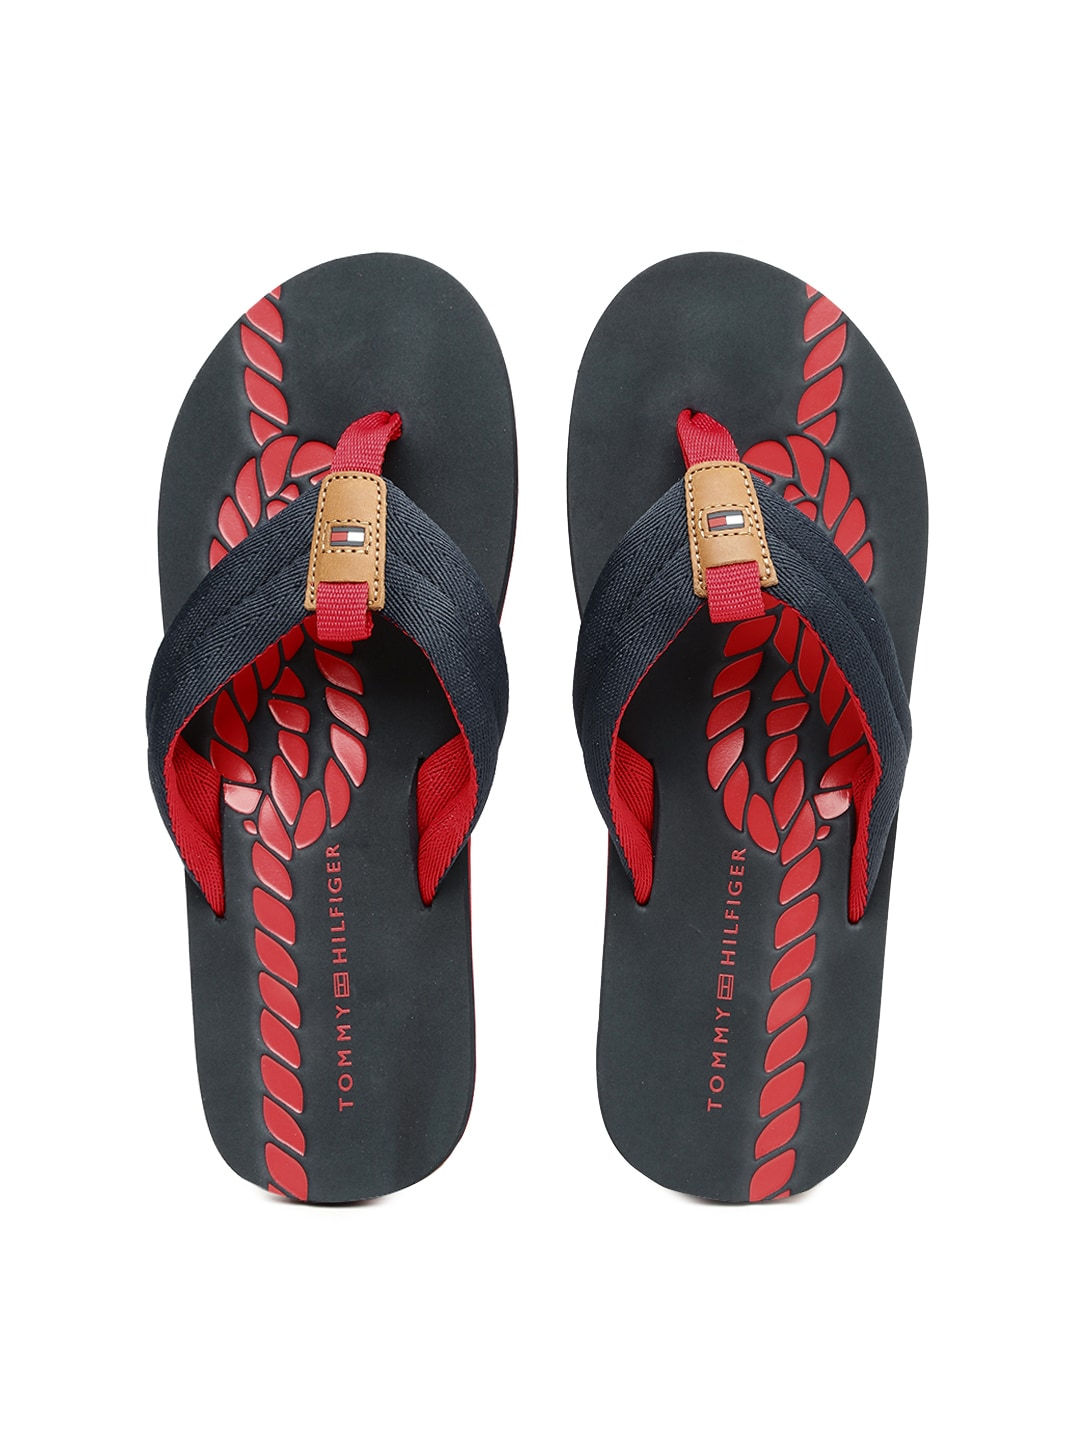 4da46afe7ea2a3 Tommy hilfiger a6amf013 Men Navy And Black Printed Flip Flops- Price in  India